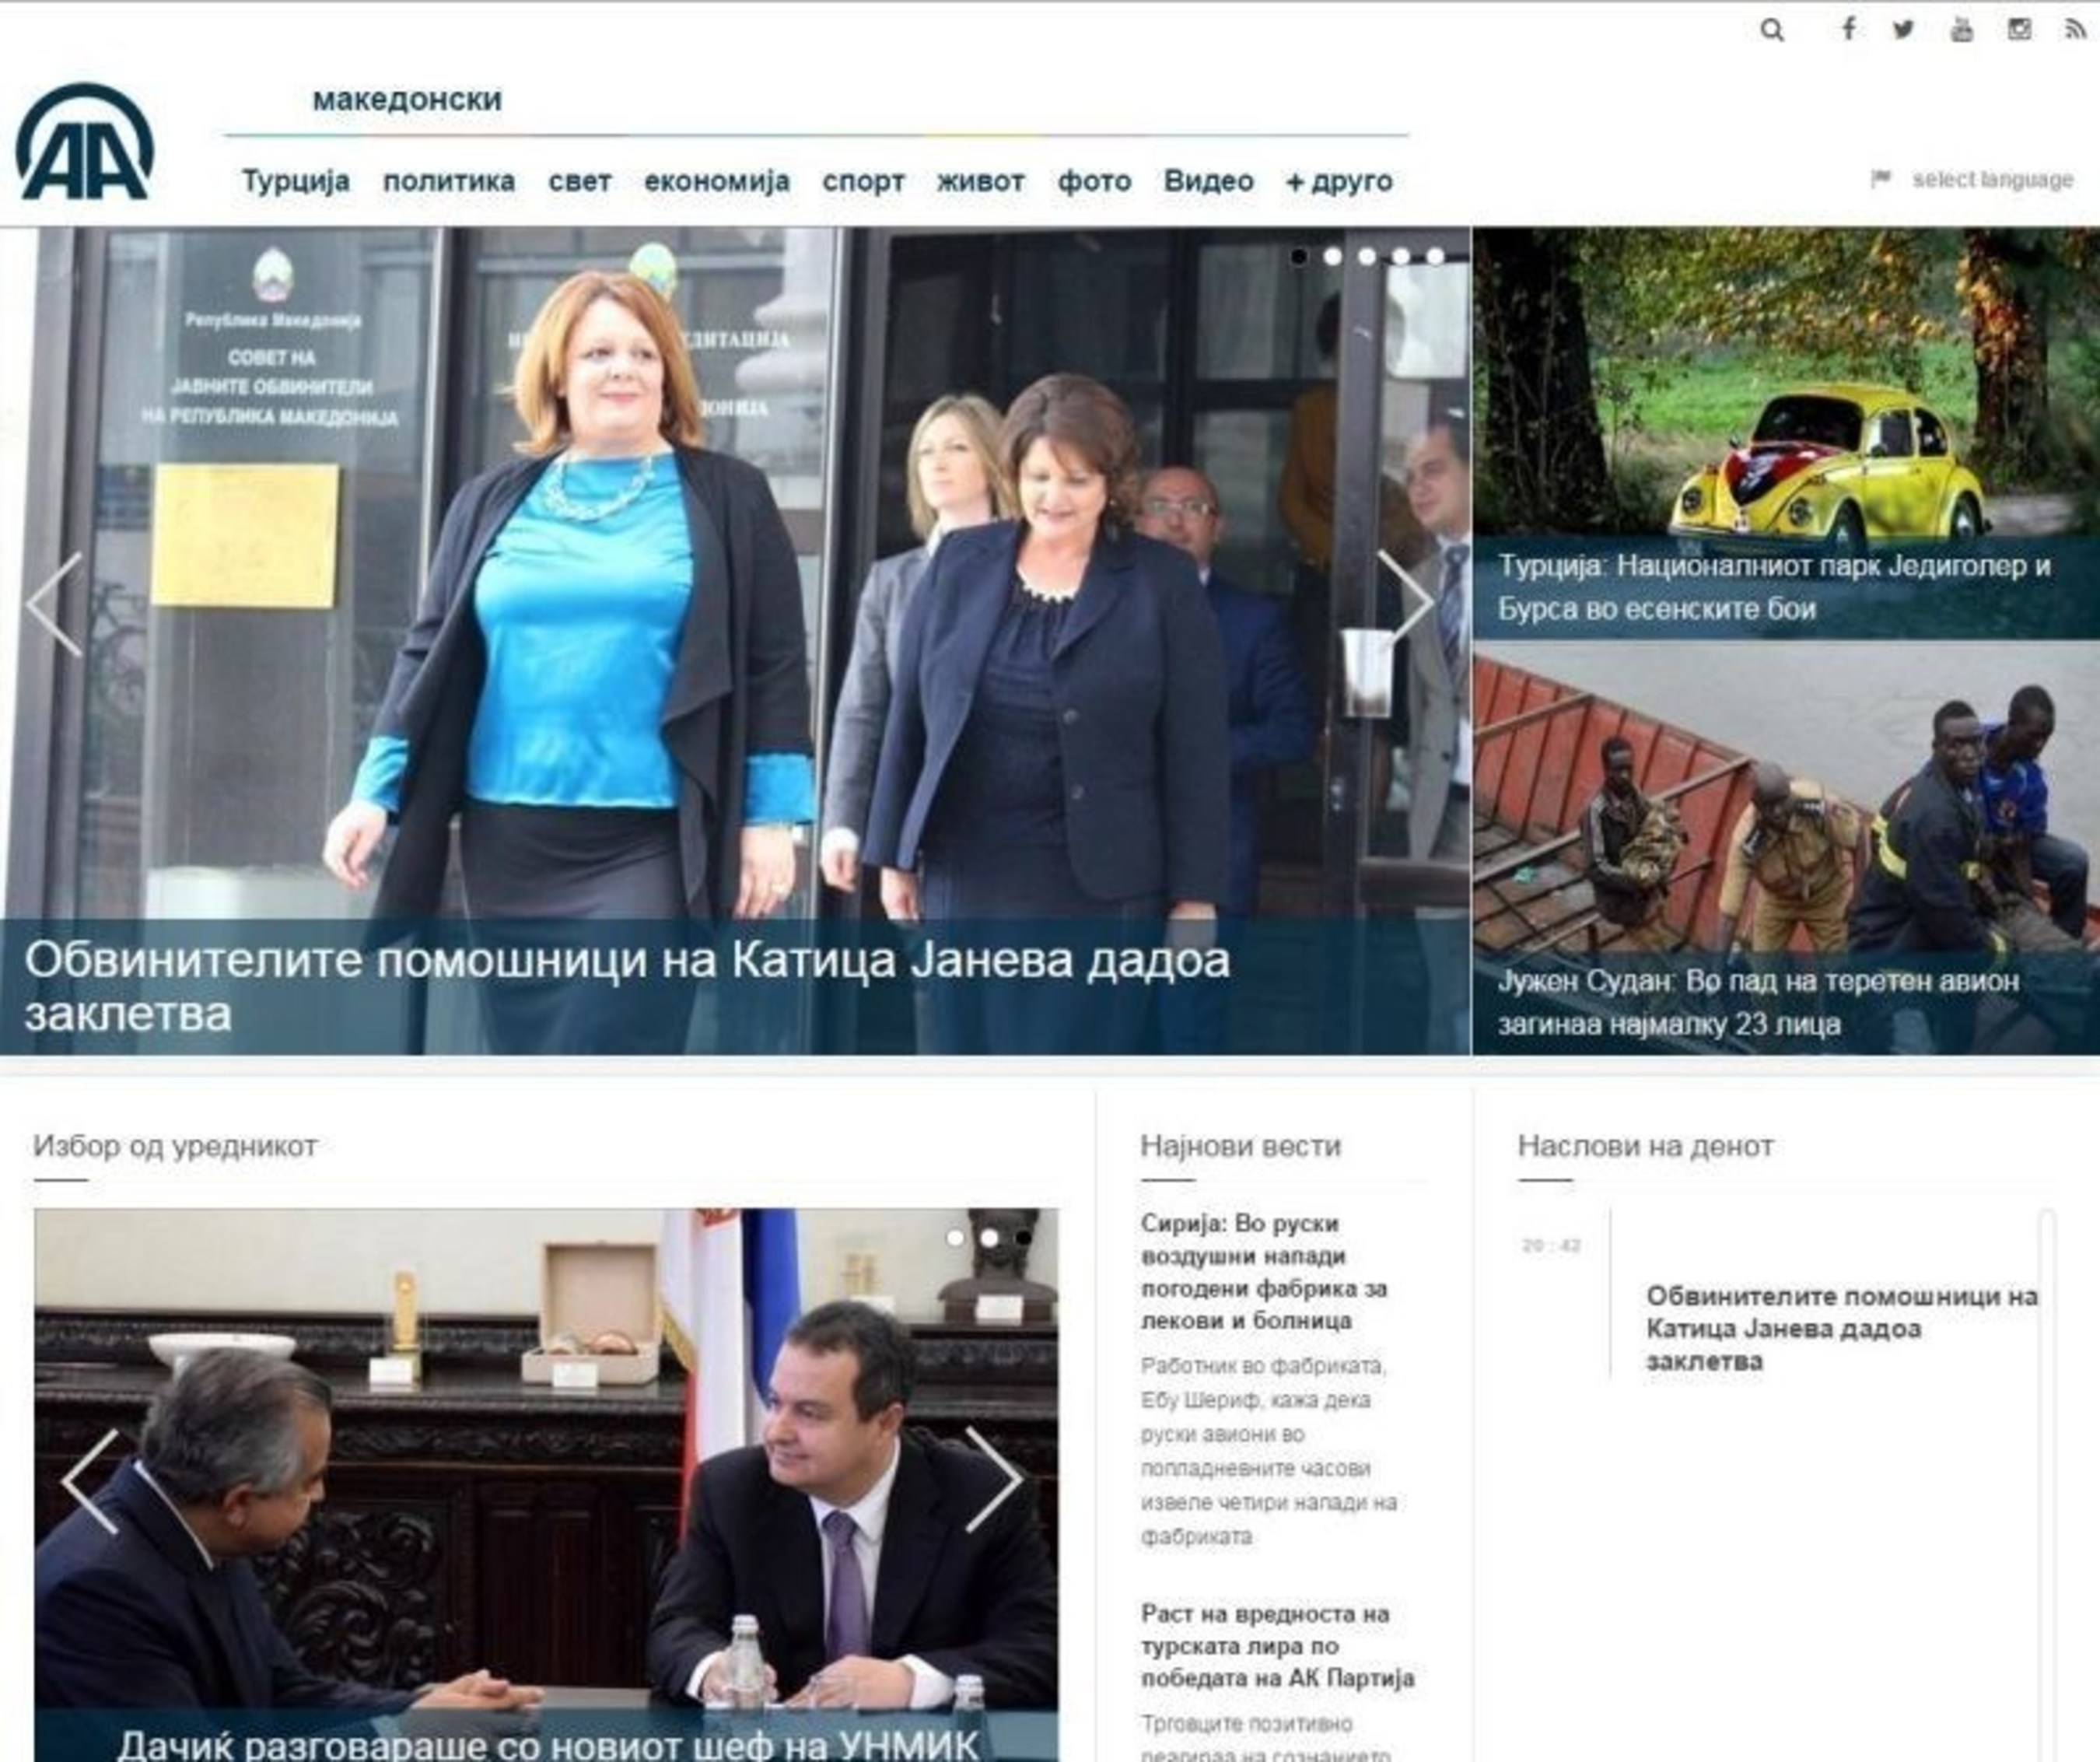 Anadolu Agency launched its Macedonian wire service and officially opened its Skopje office on Monday, with ...